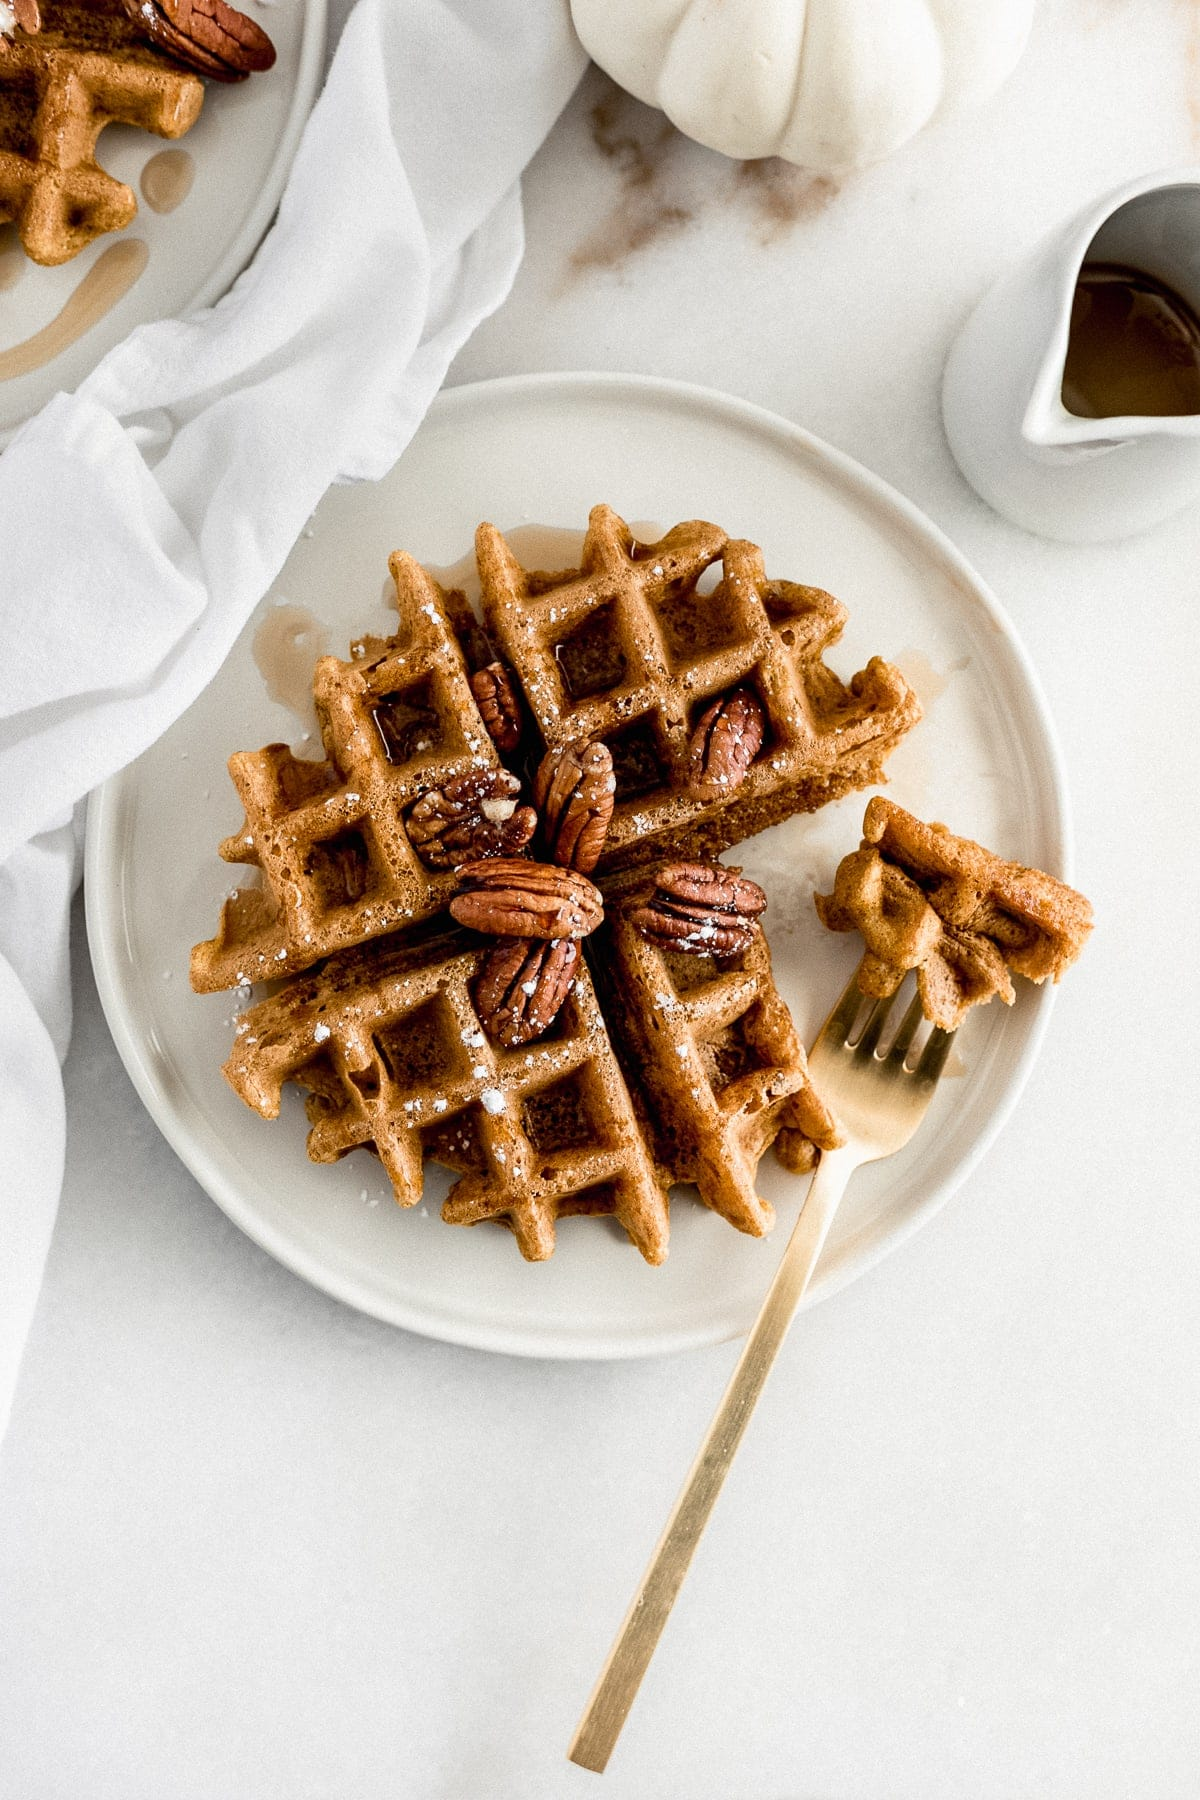 Healthy whole wheat pumpkin waffles with crispy outsides and fluffy, spiced insides are the perfect fall breakfast to wake up to on weekends!  (dairy-free, vegetarian, no added sugar)